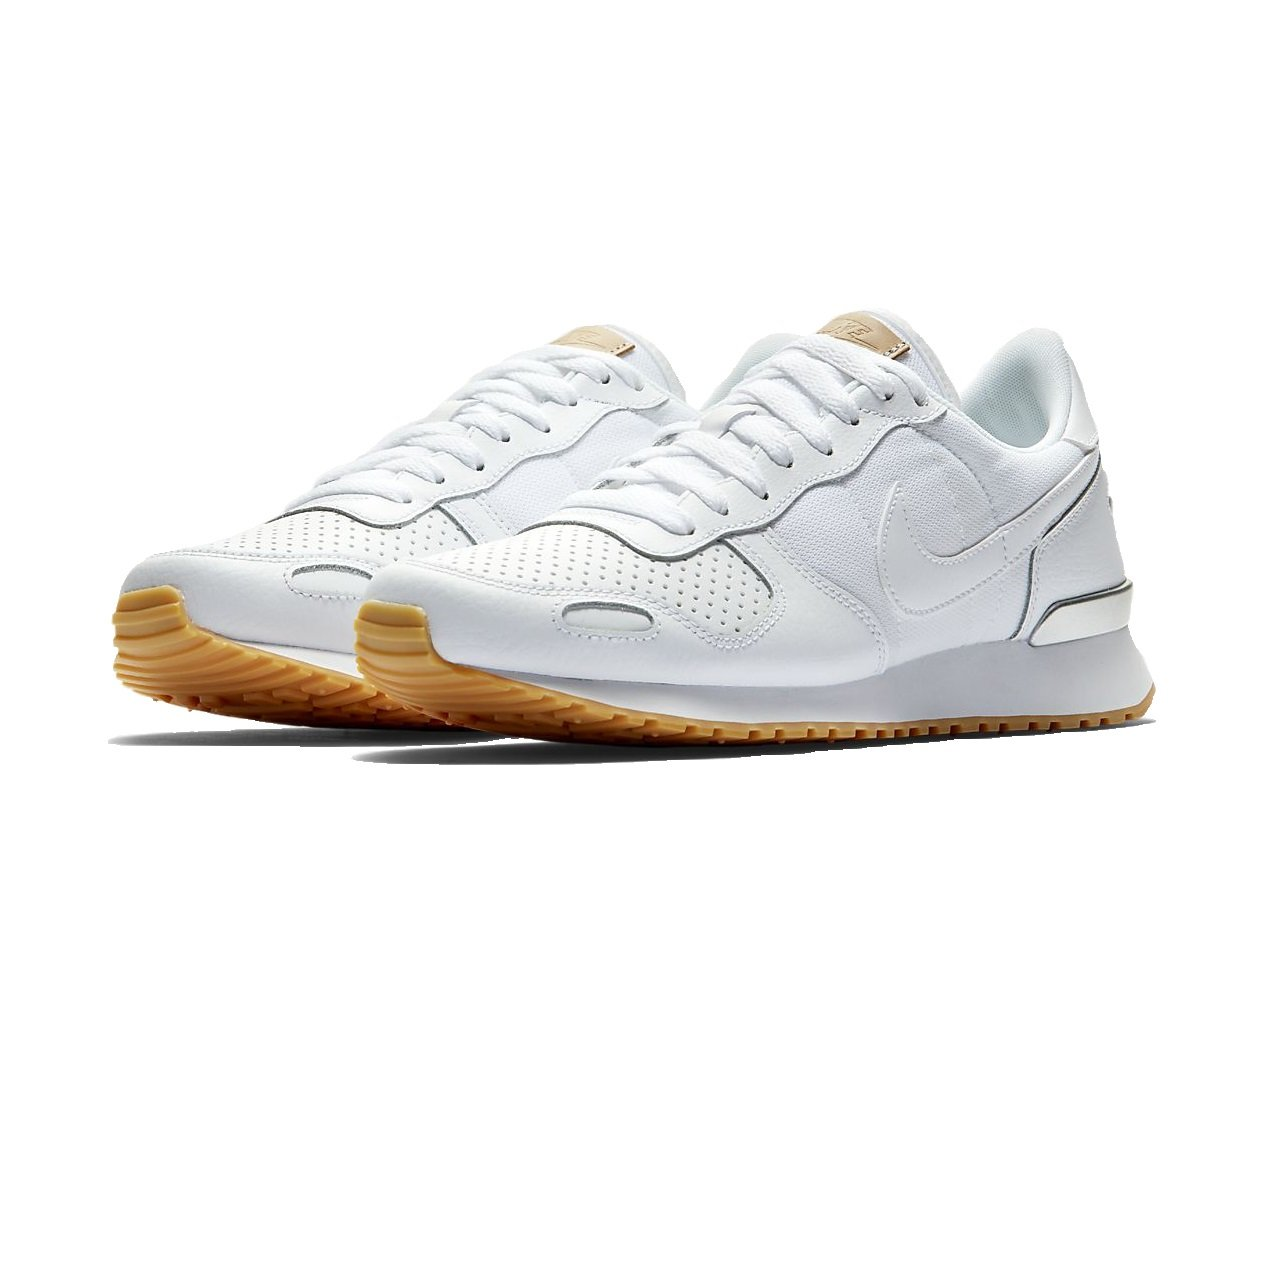 Nike Air Vortex Mens Running Trainers 903896 Sneakers Shoes